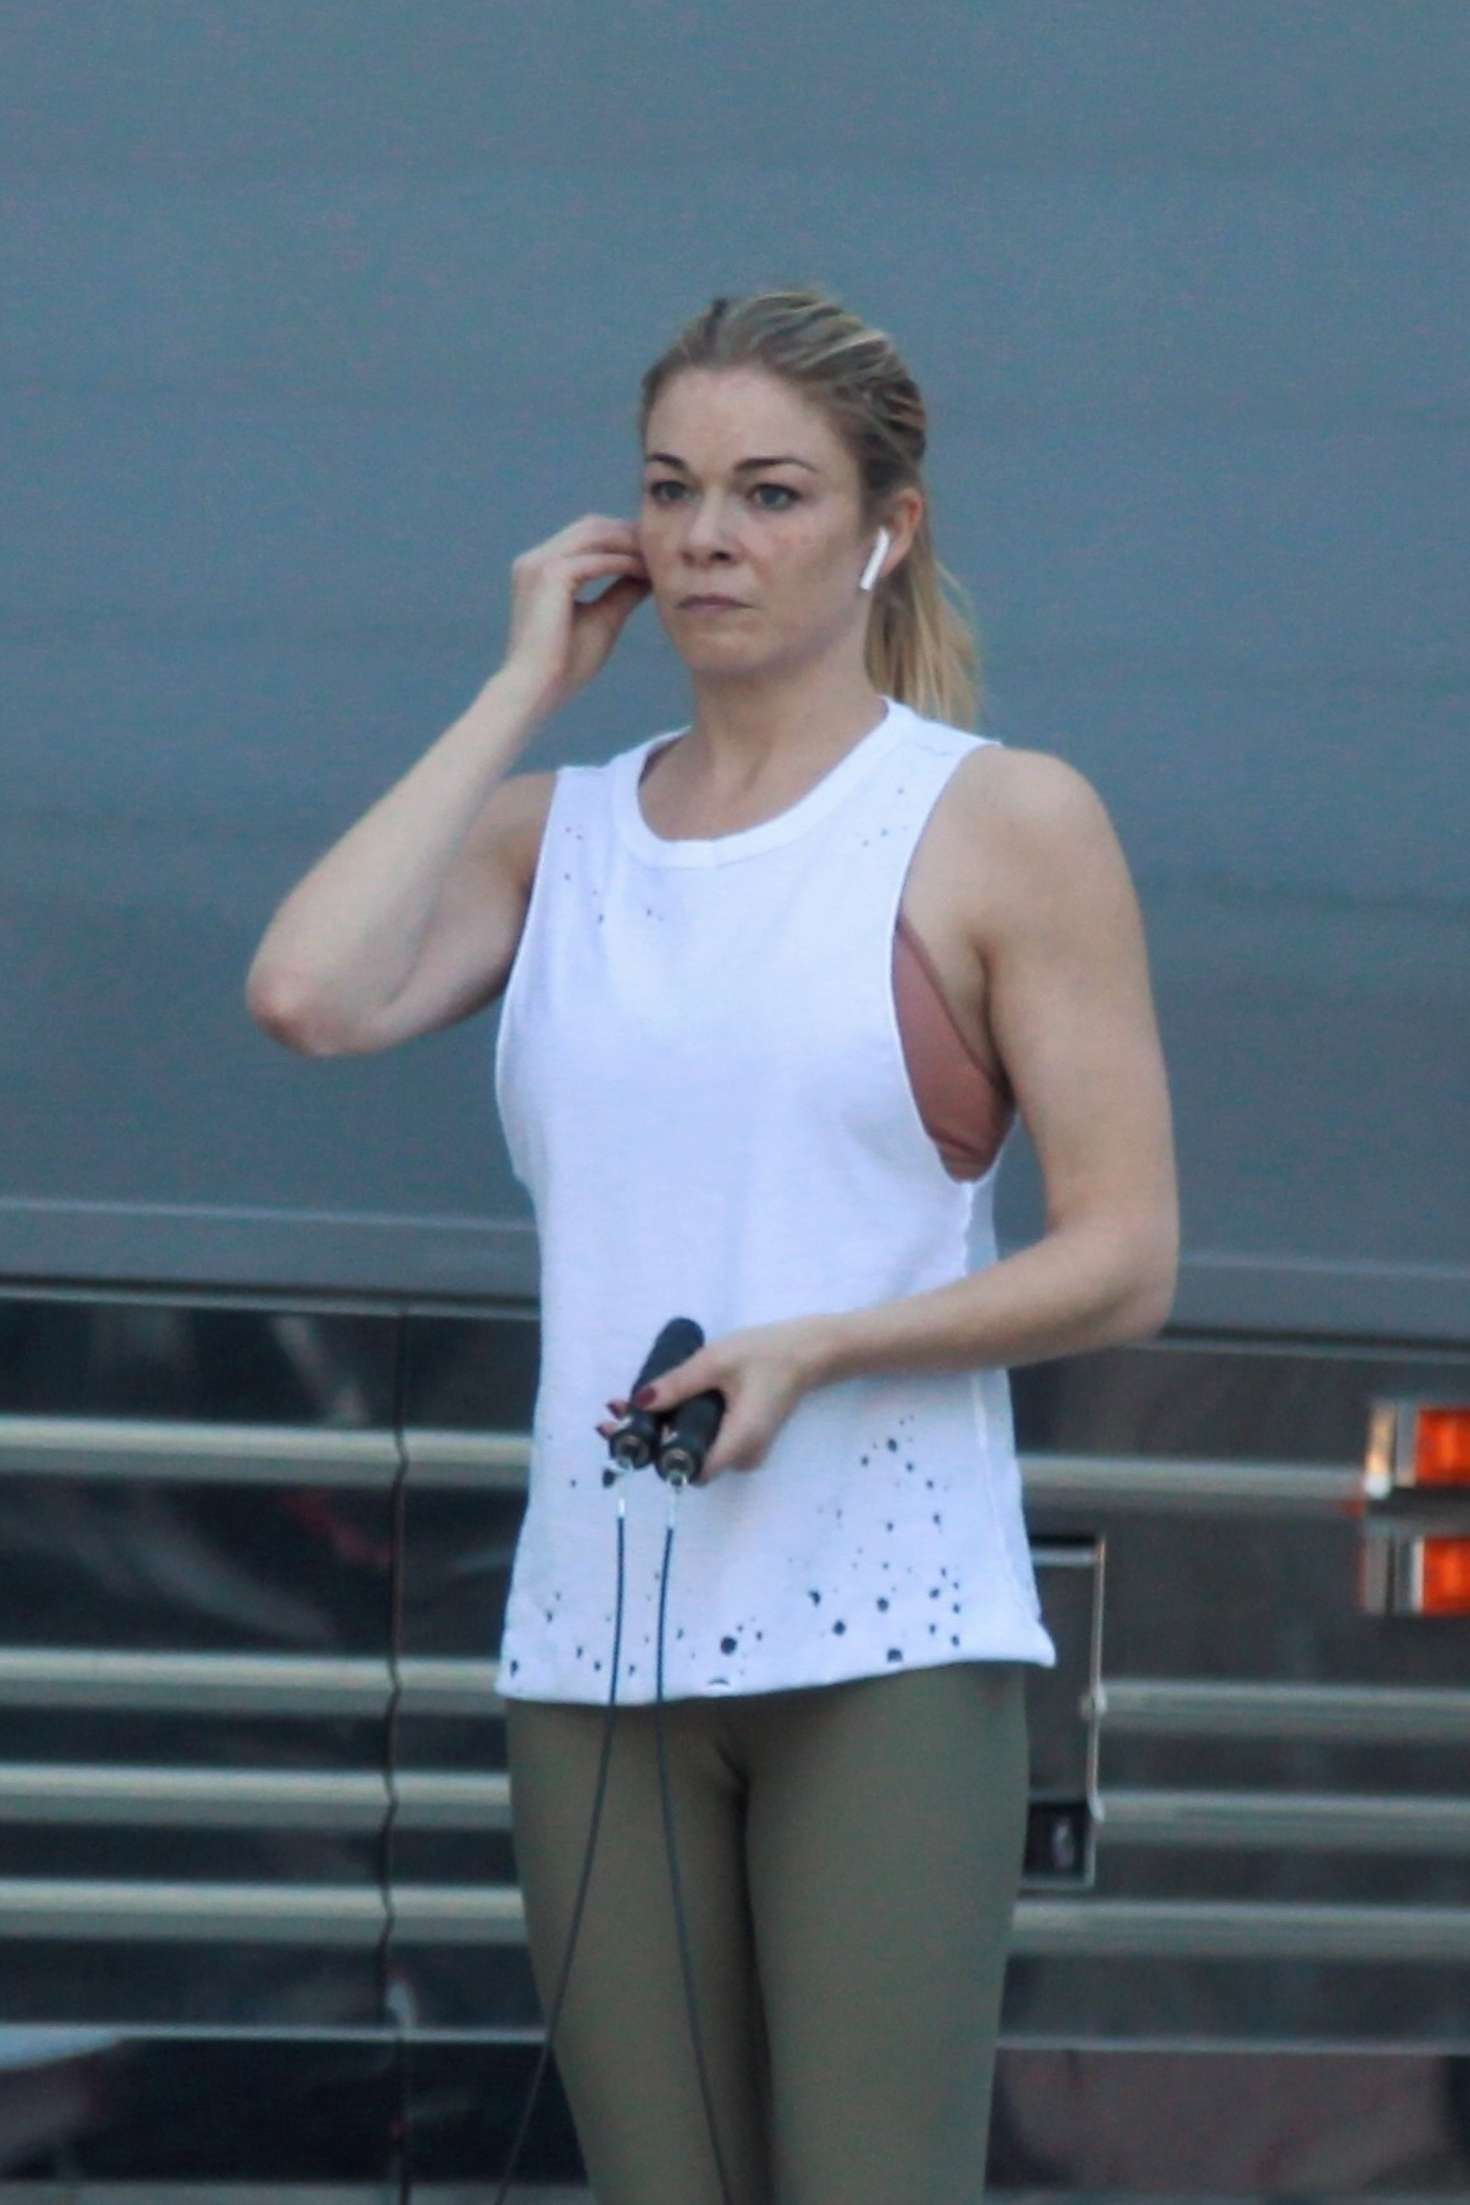 LeAnn Rimes in Tights - Workout in Palm Desert